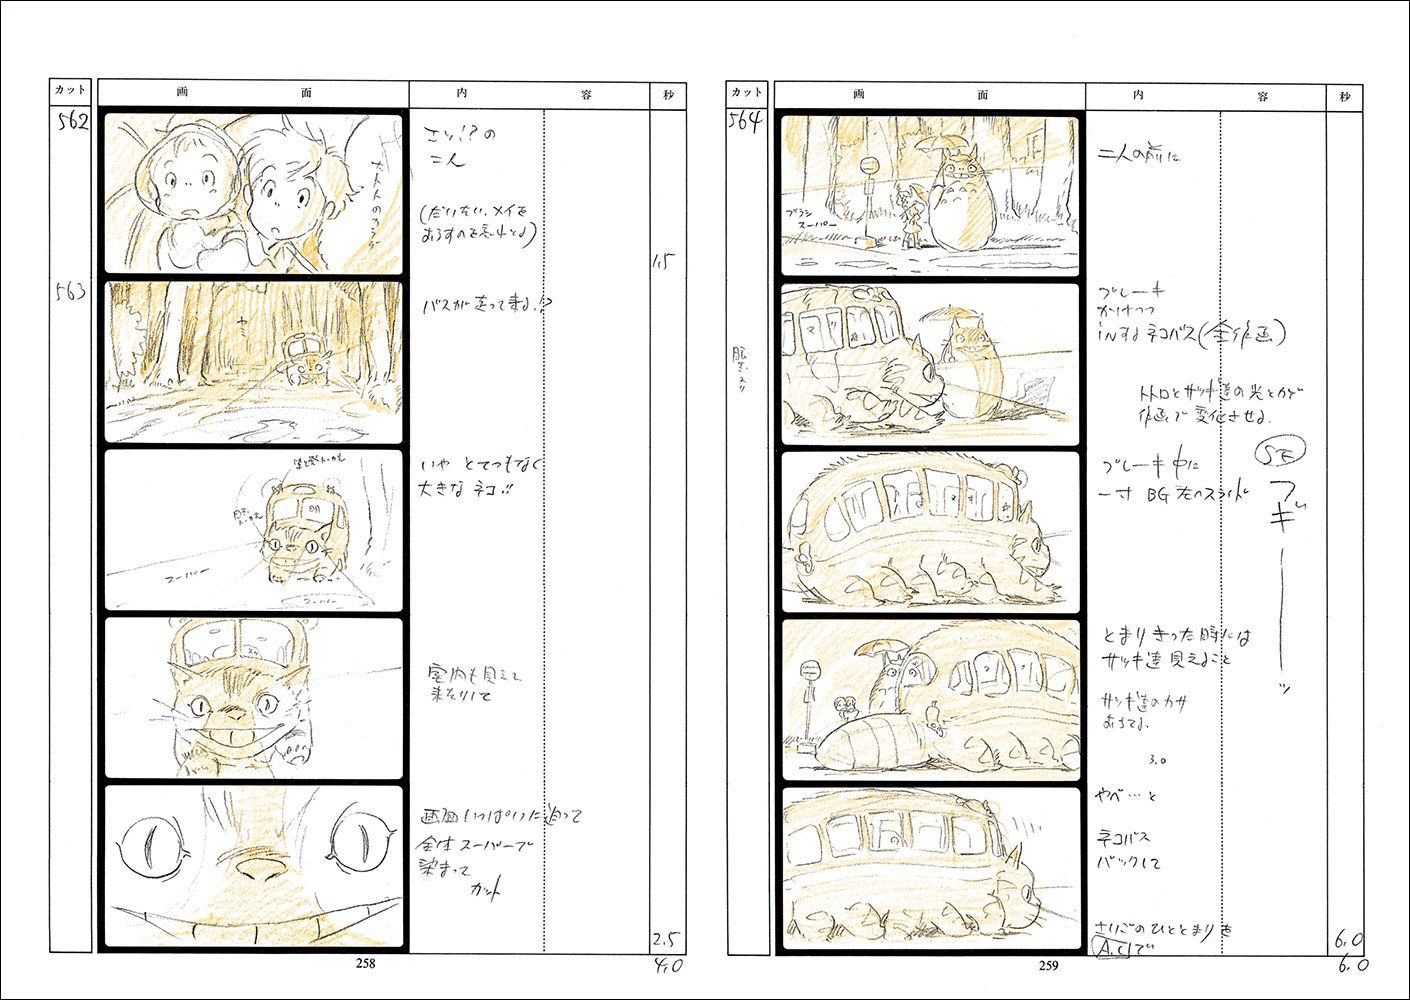 My Neighbor Totoro Studio Ghibli Storyboard Collection Volume